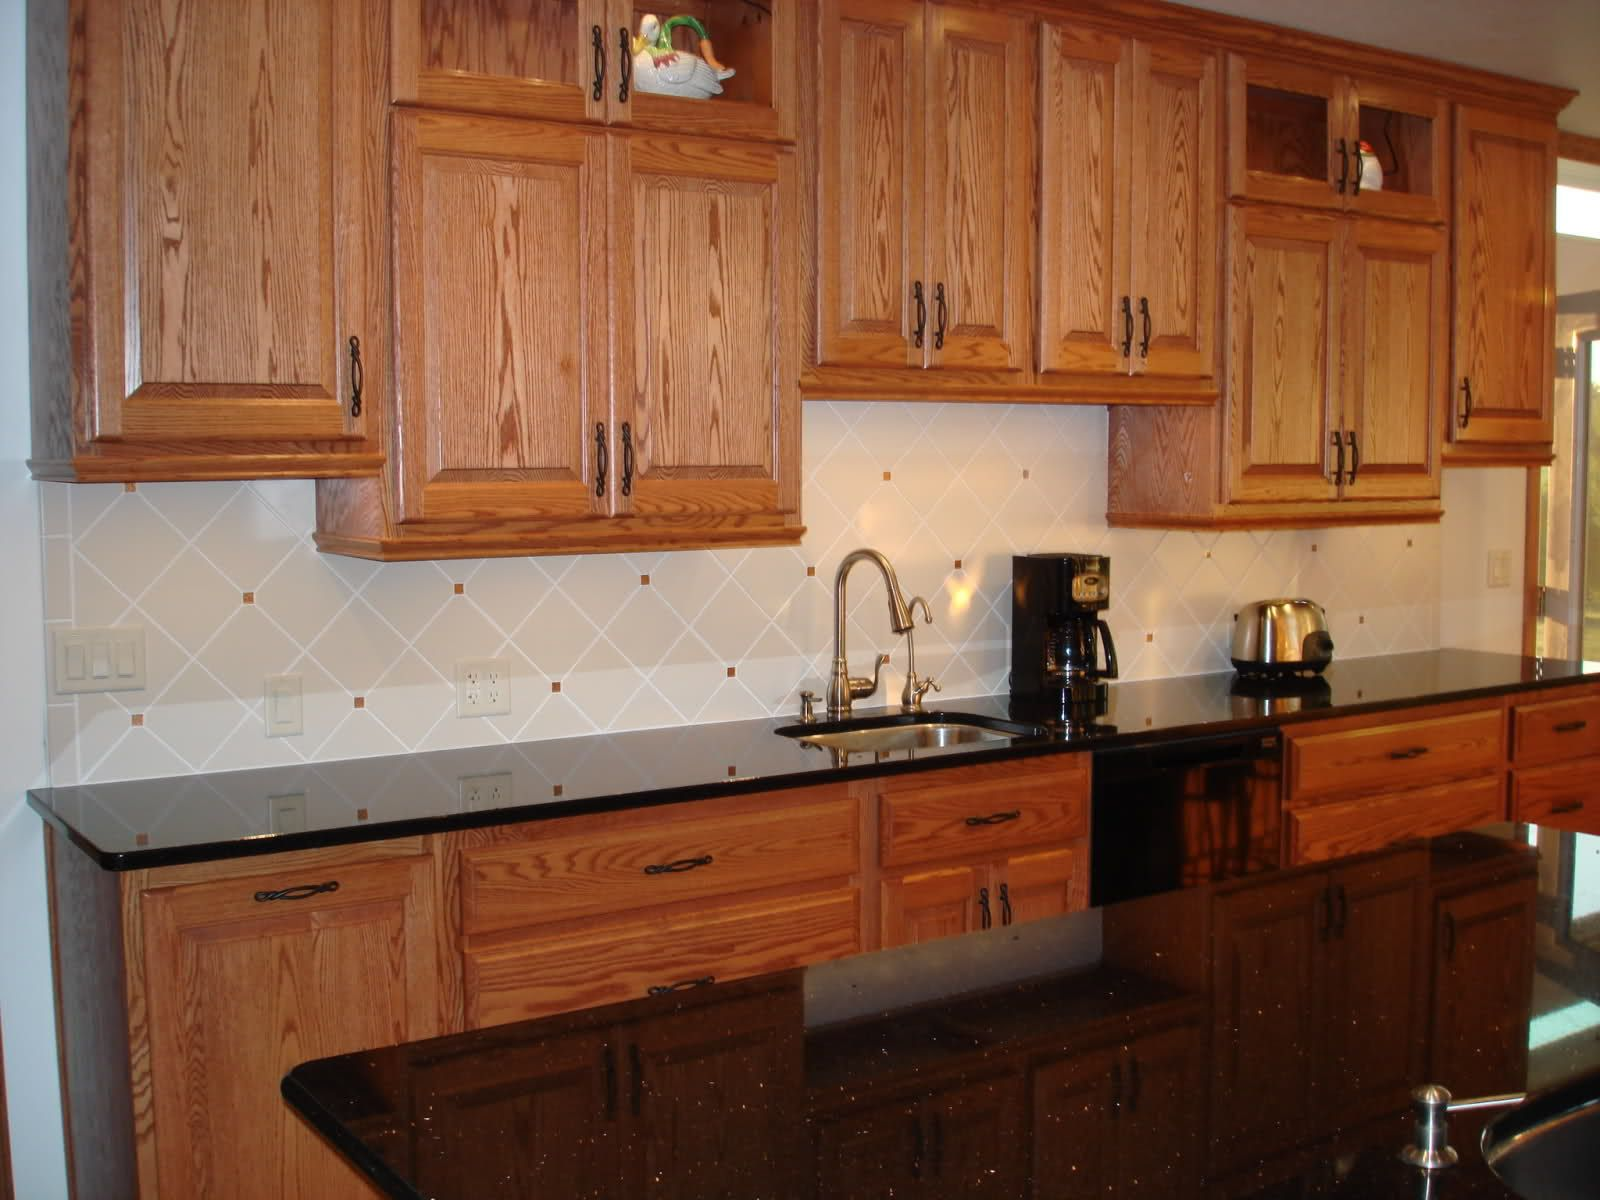 Design In Wood What To Do With Oak Cabinets: Backsplash Pictures With Oak Cabinets And Uba Tuba Granite